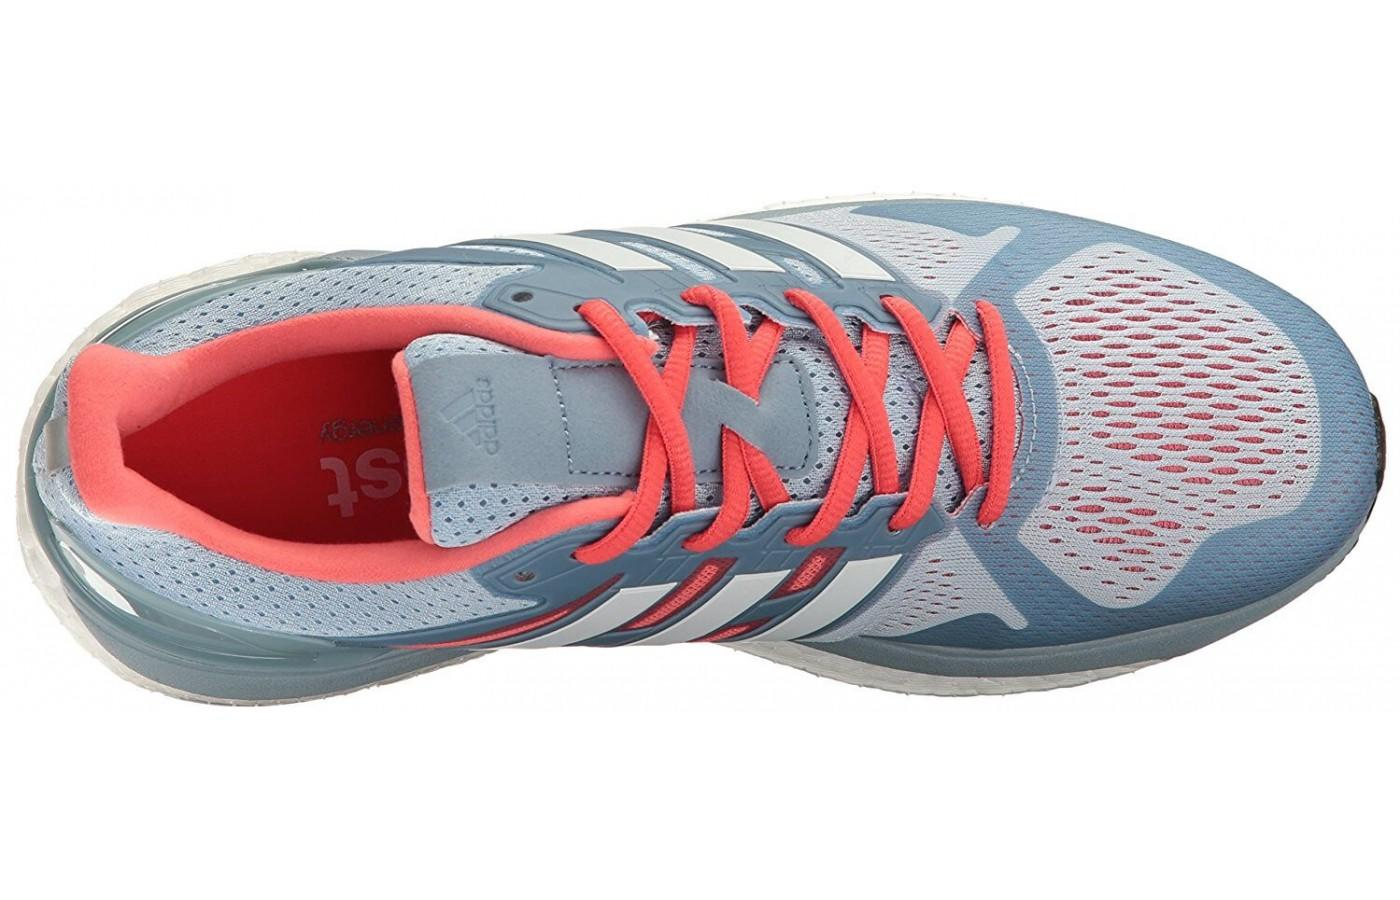 breathable mesh of the upper and the plastic overlays work in concert to provide a supportive, comfortable fit